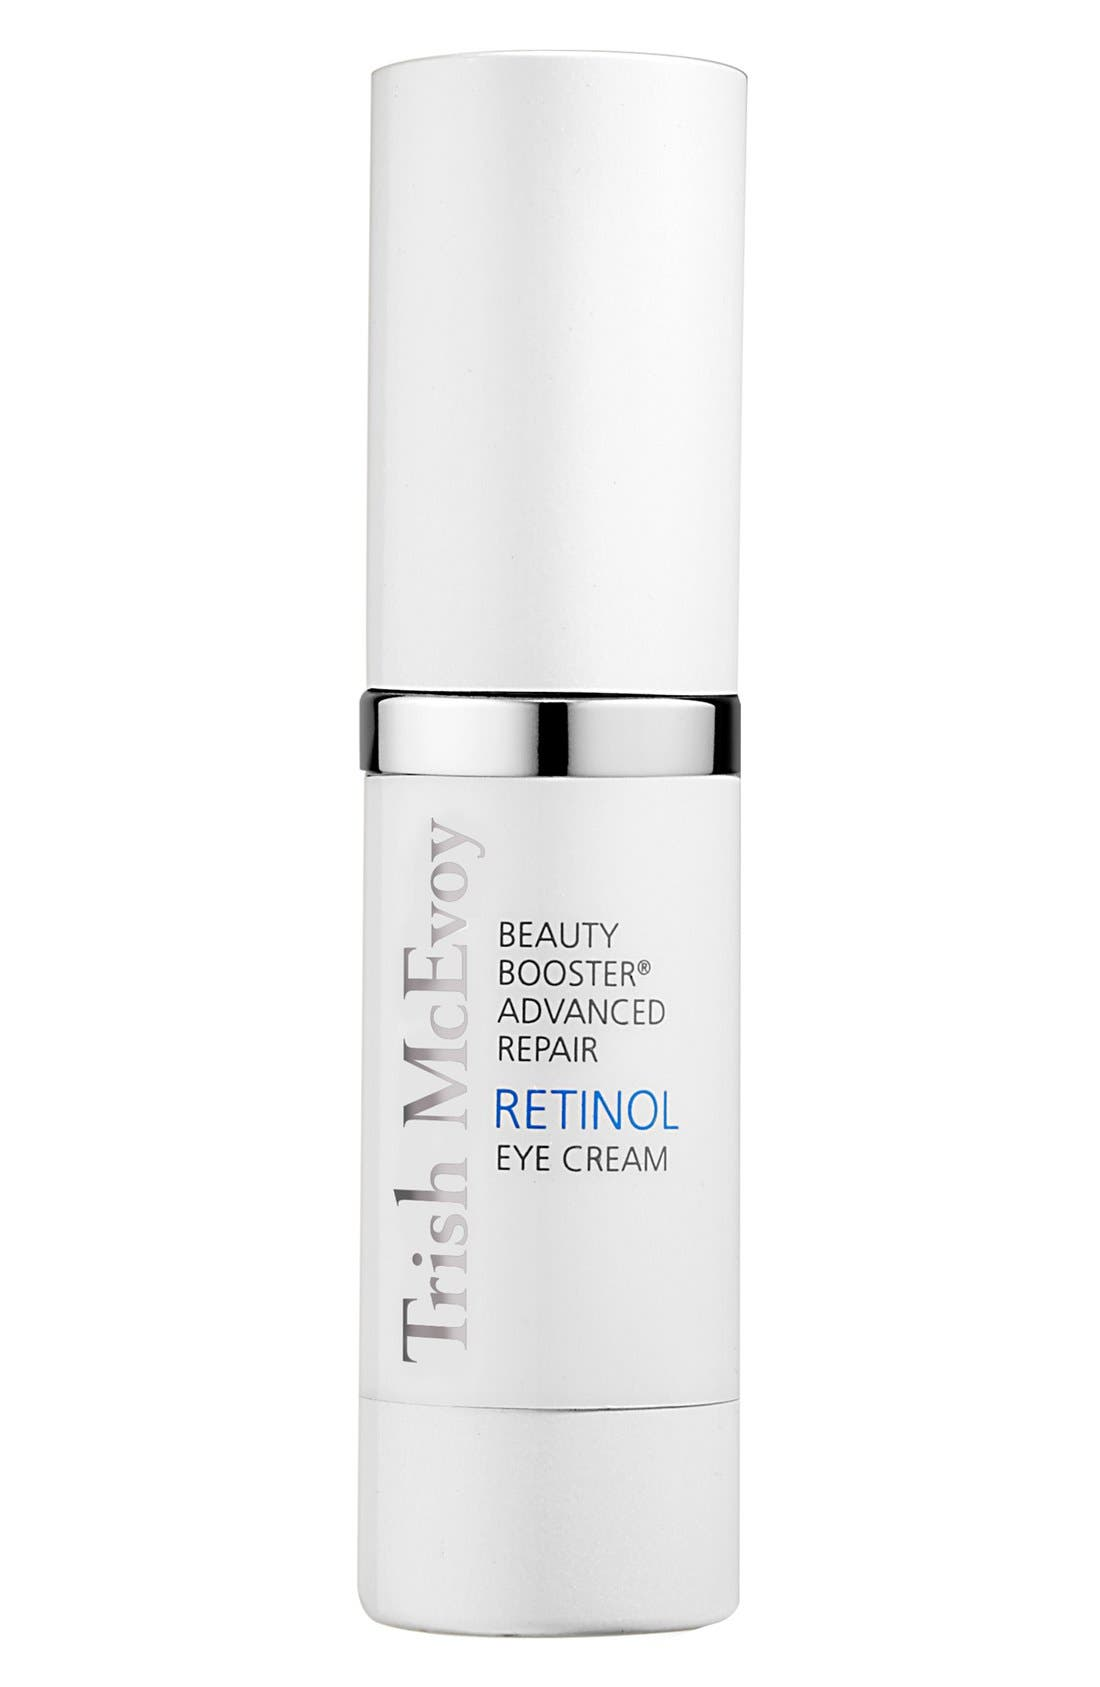 Trish McEvoy Beauty Booster® Advanced Repair Retinol Eye Cream